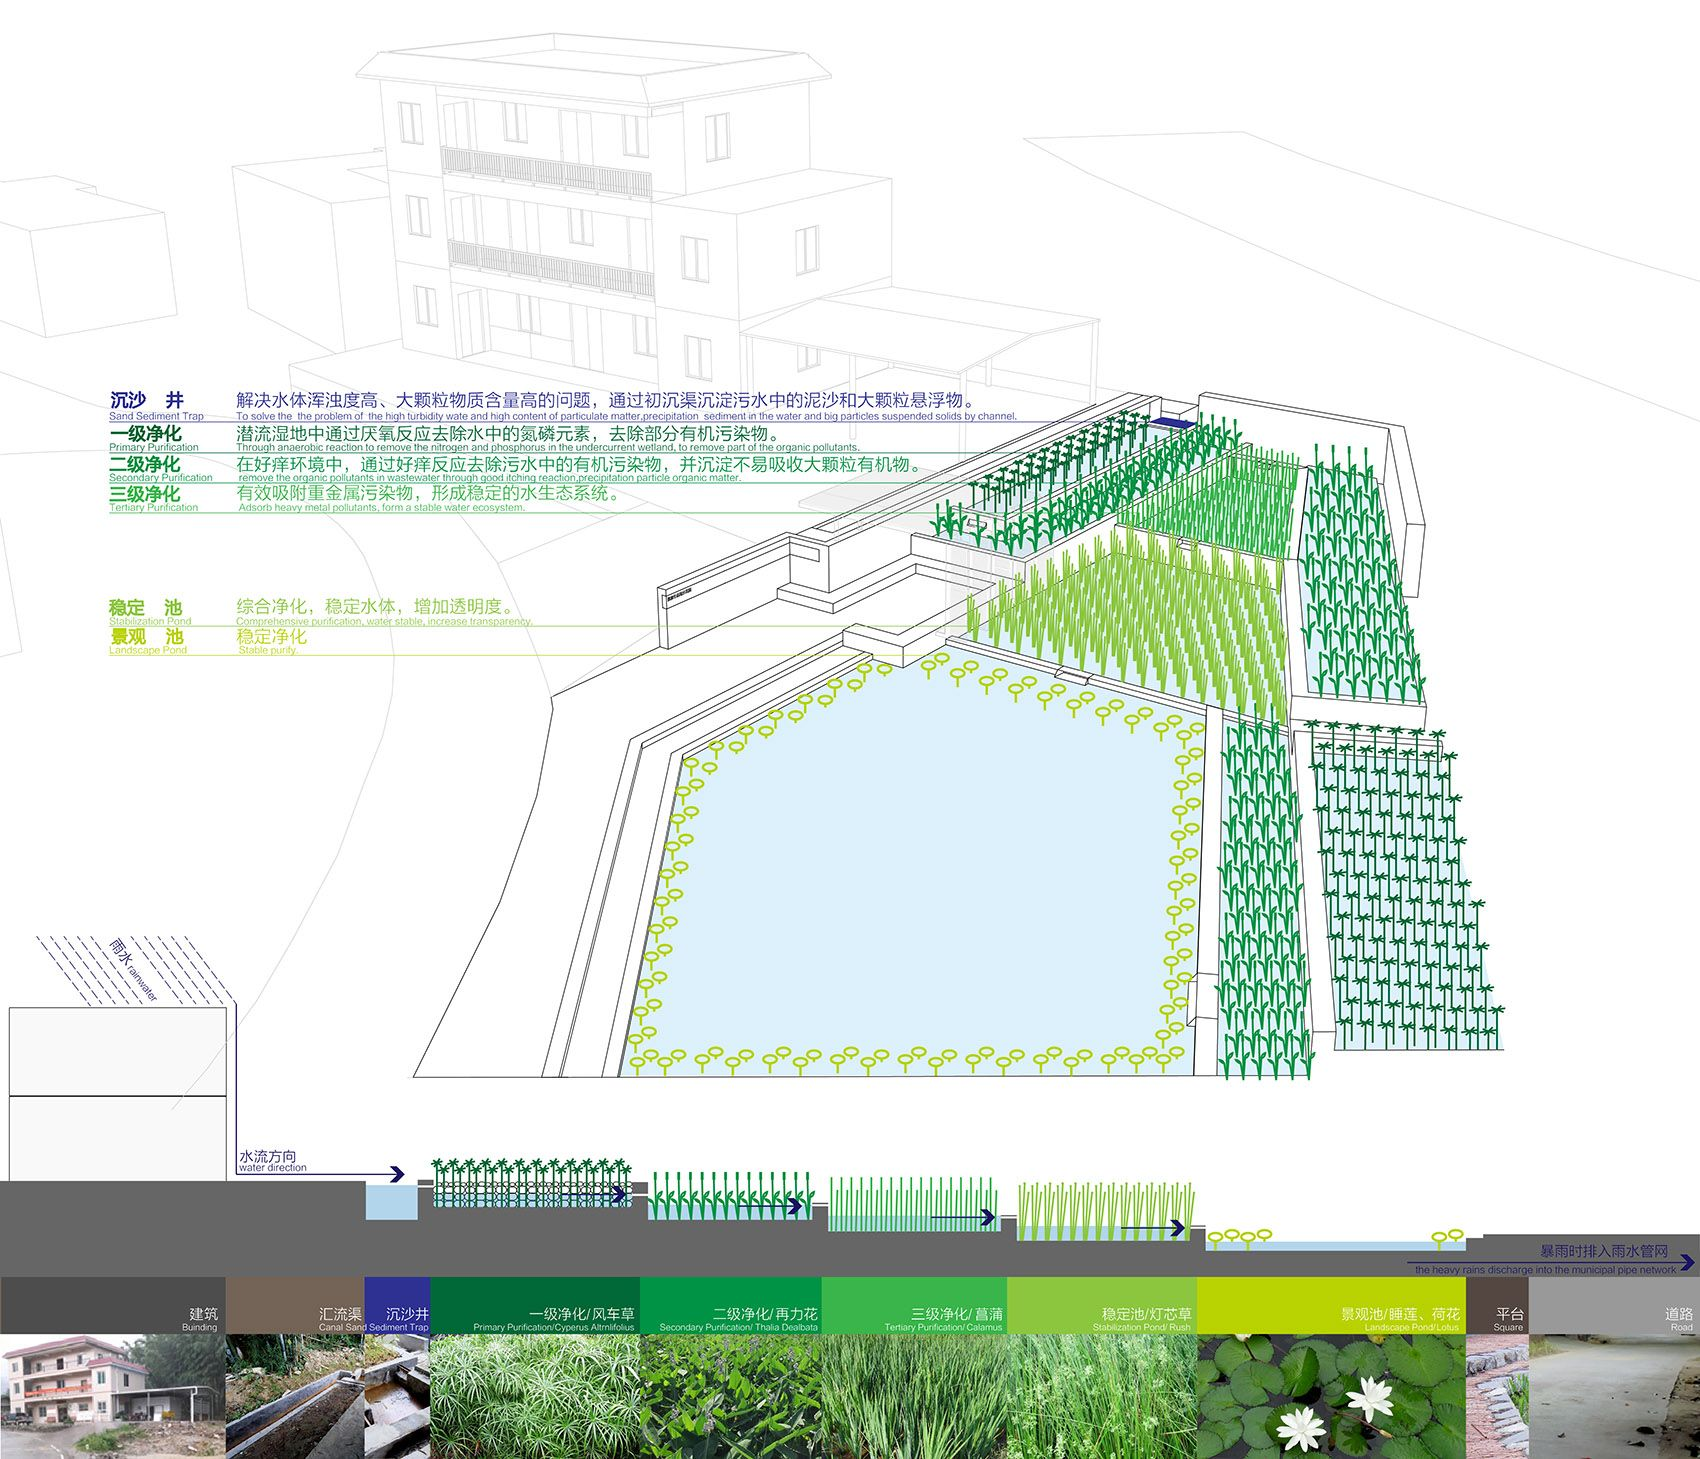 Pin by 靖諺 黃 on y4p2 Rainwater, Ecology, Water